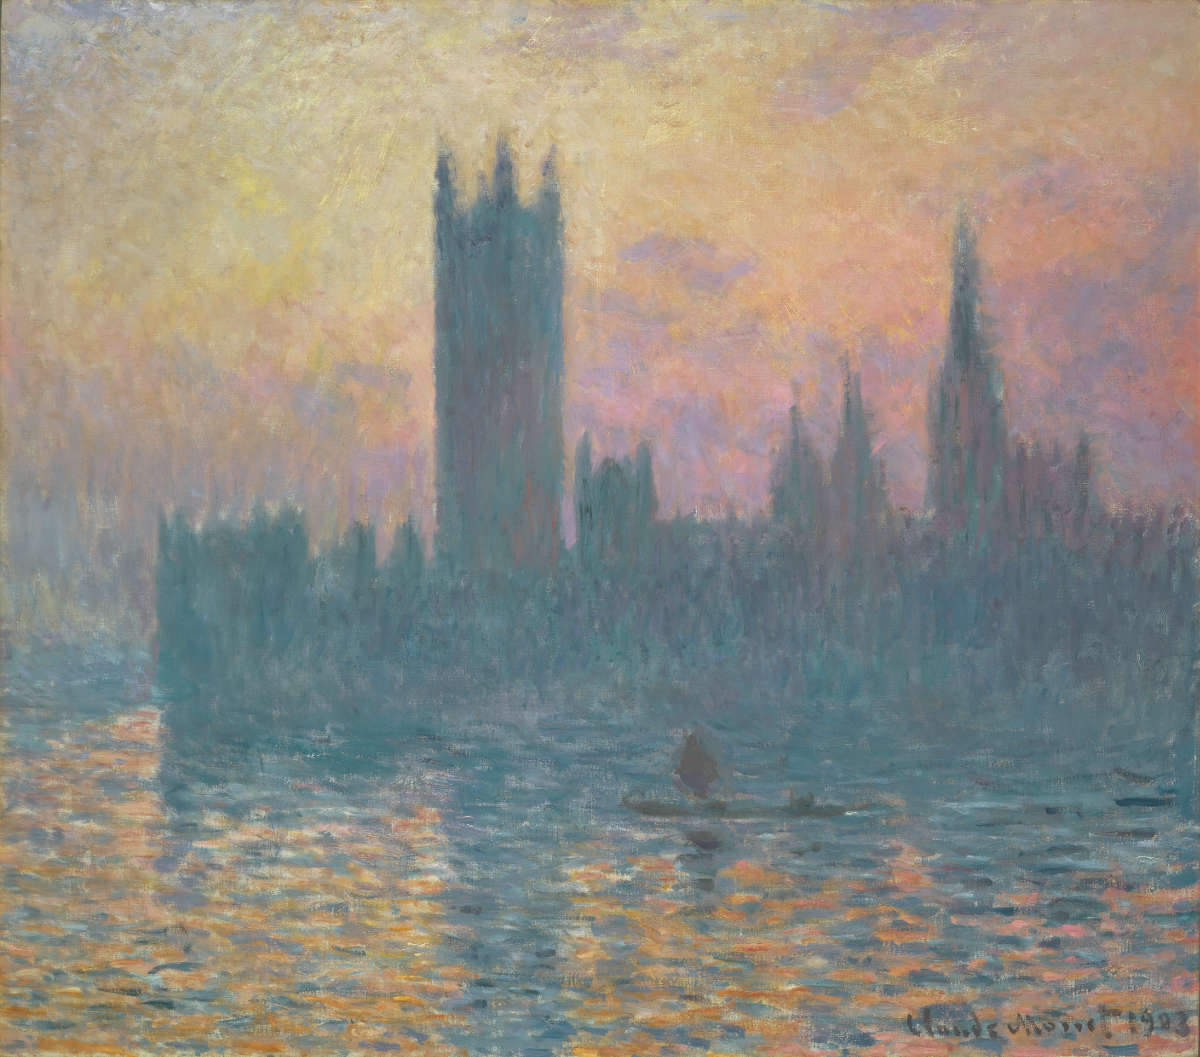 Figue. 5 -Les maisons du Parlement, Coucher du soleil, Claude Monet, 1903. National Gallery of Art, Washington. Chester Dale Collection.